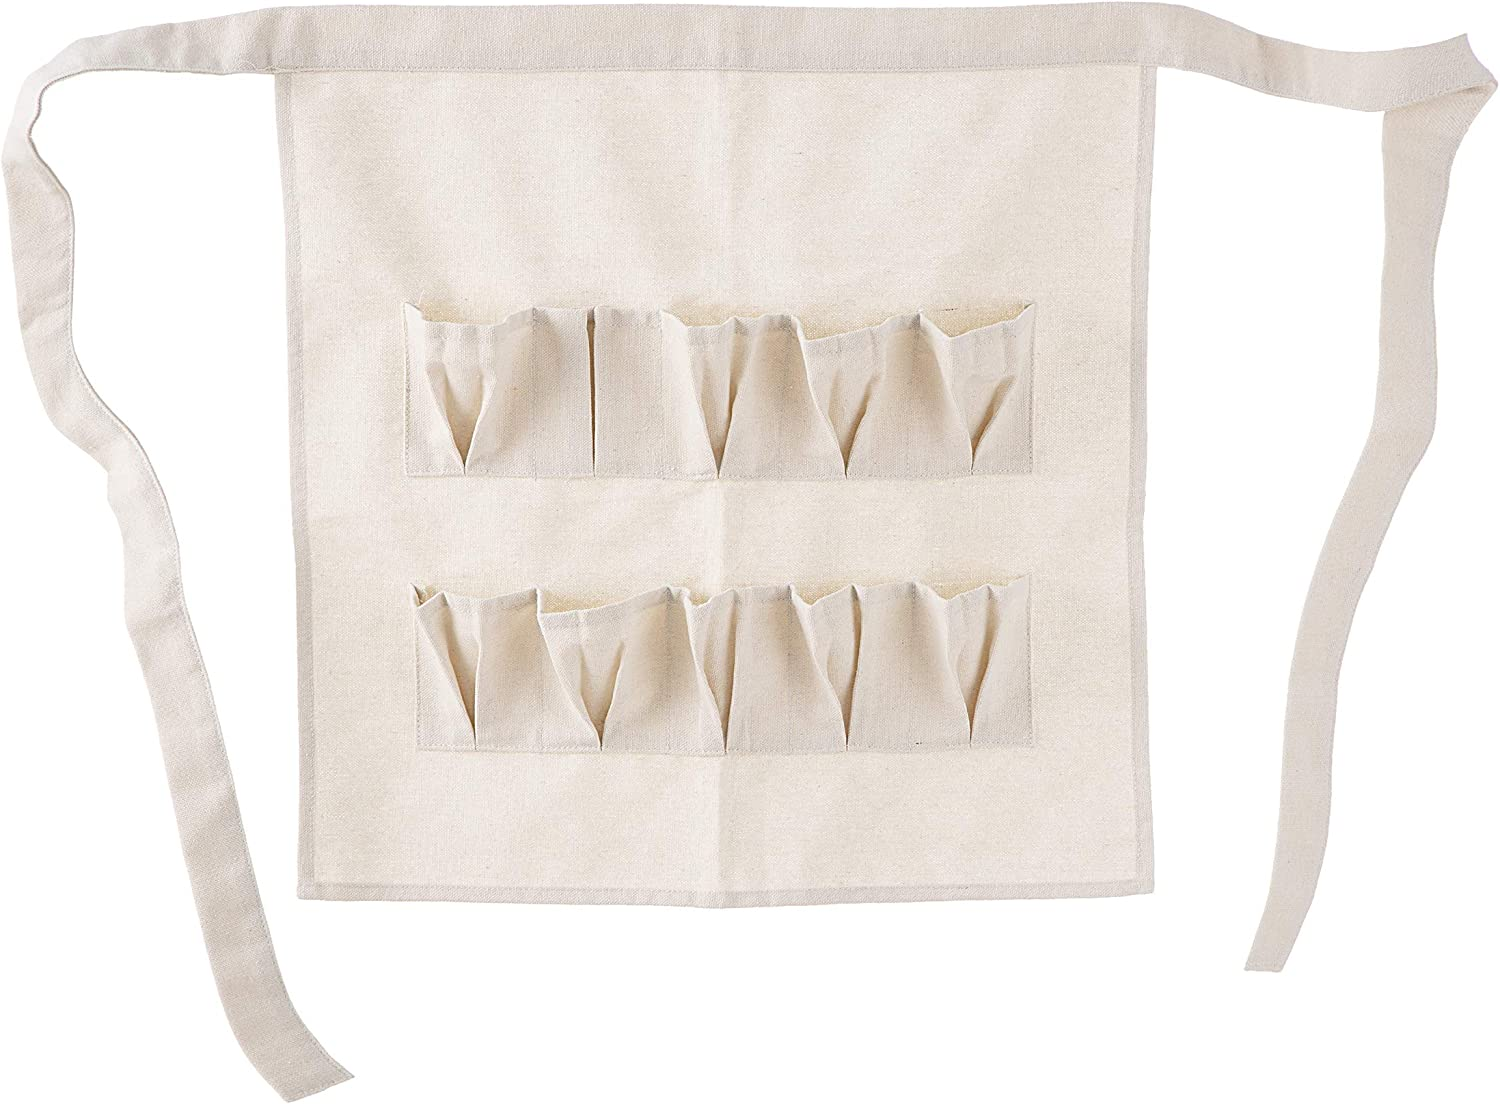 Darice Canvas Egg Apron: Natural Sacramento Mall Shipping included Adult Size 19.5 Inches 20 x